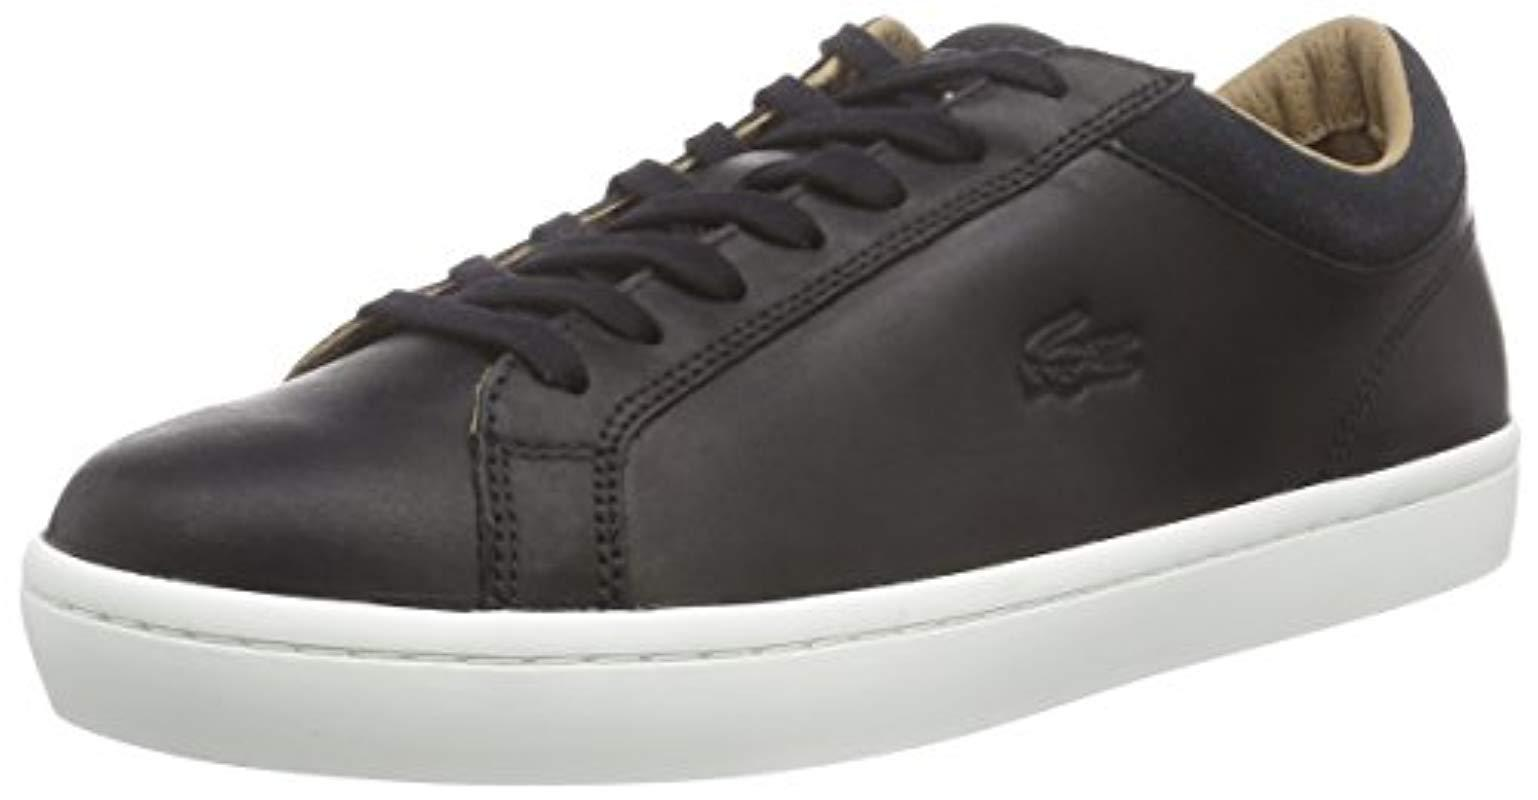 42f245788e1825 Lacoste Straightset Crf Low-top Trainer in Black for Men - Lyst